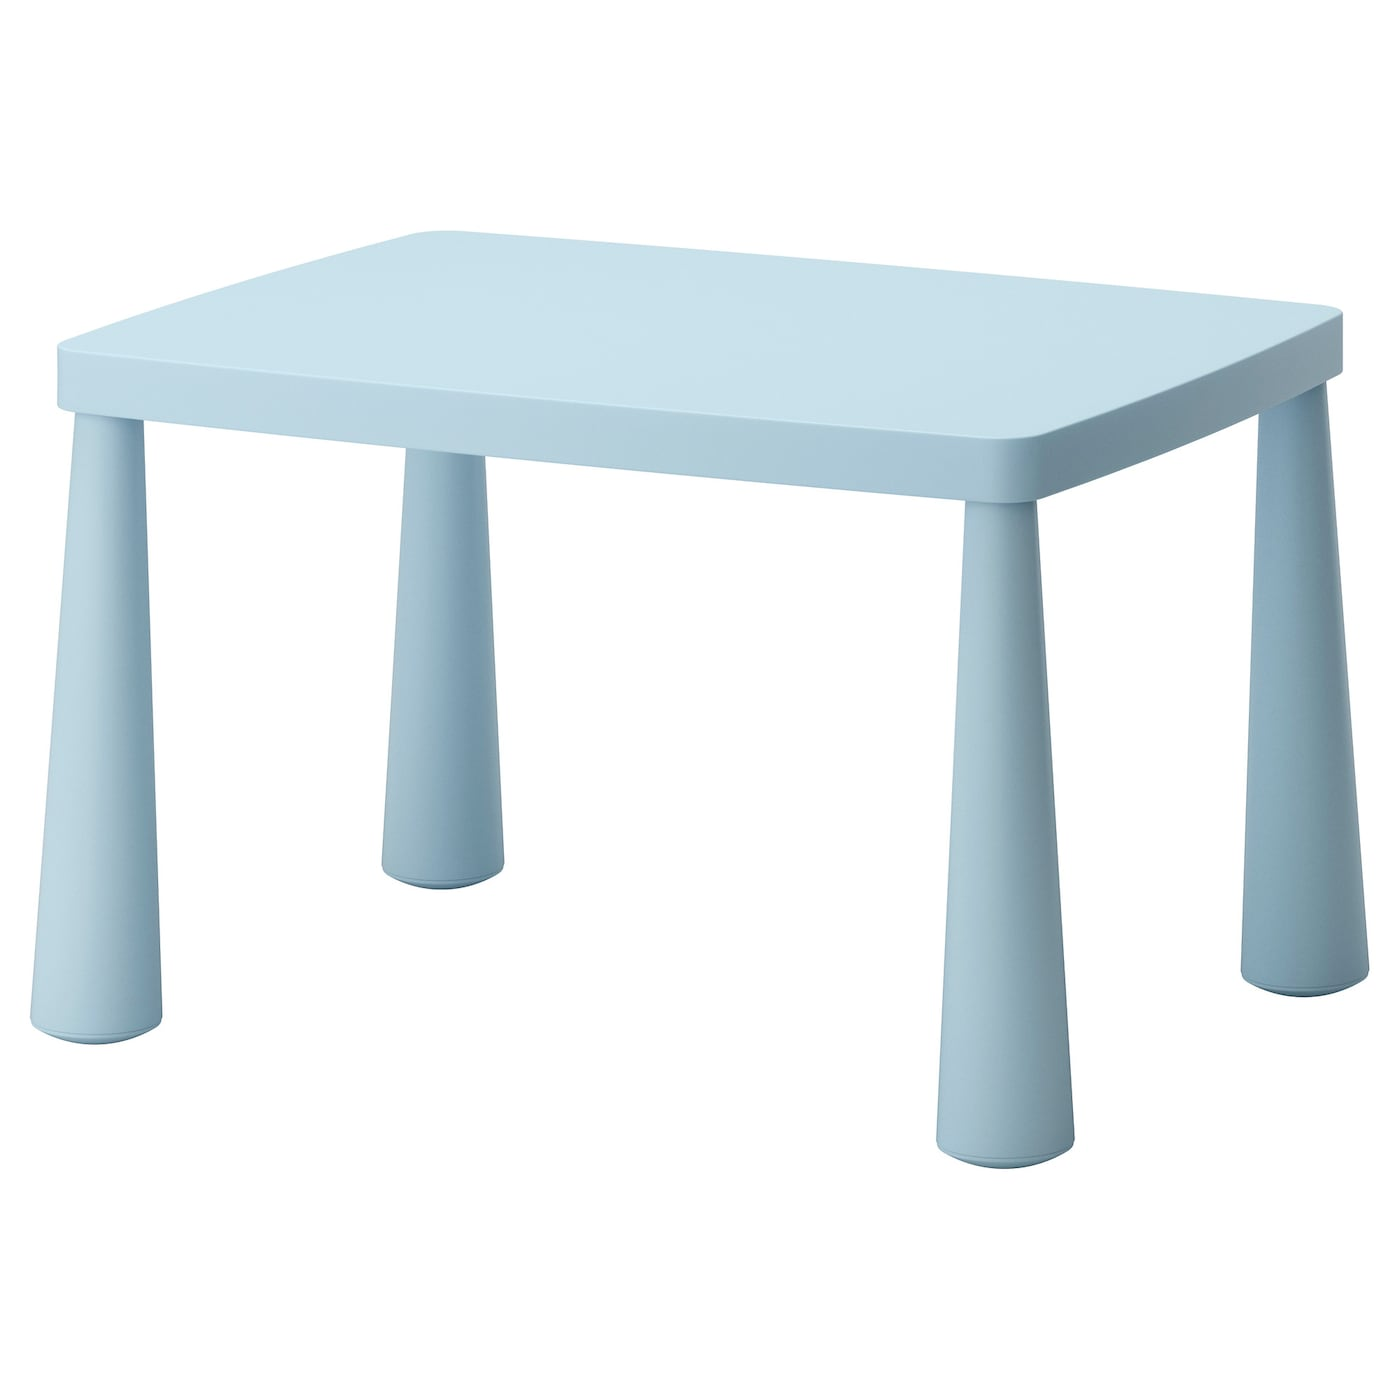 Mammut children 39 s table in outdoor light blue 77x55 cm ikea for Table et chaise ikea